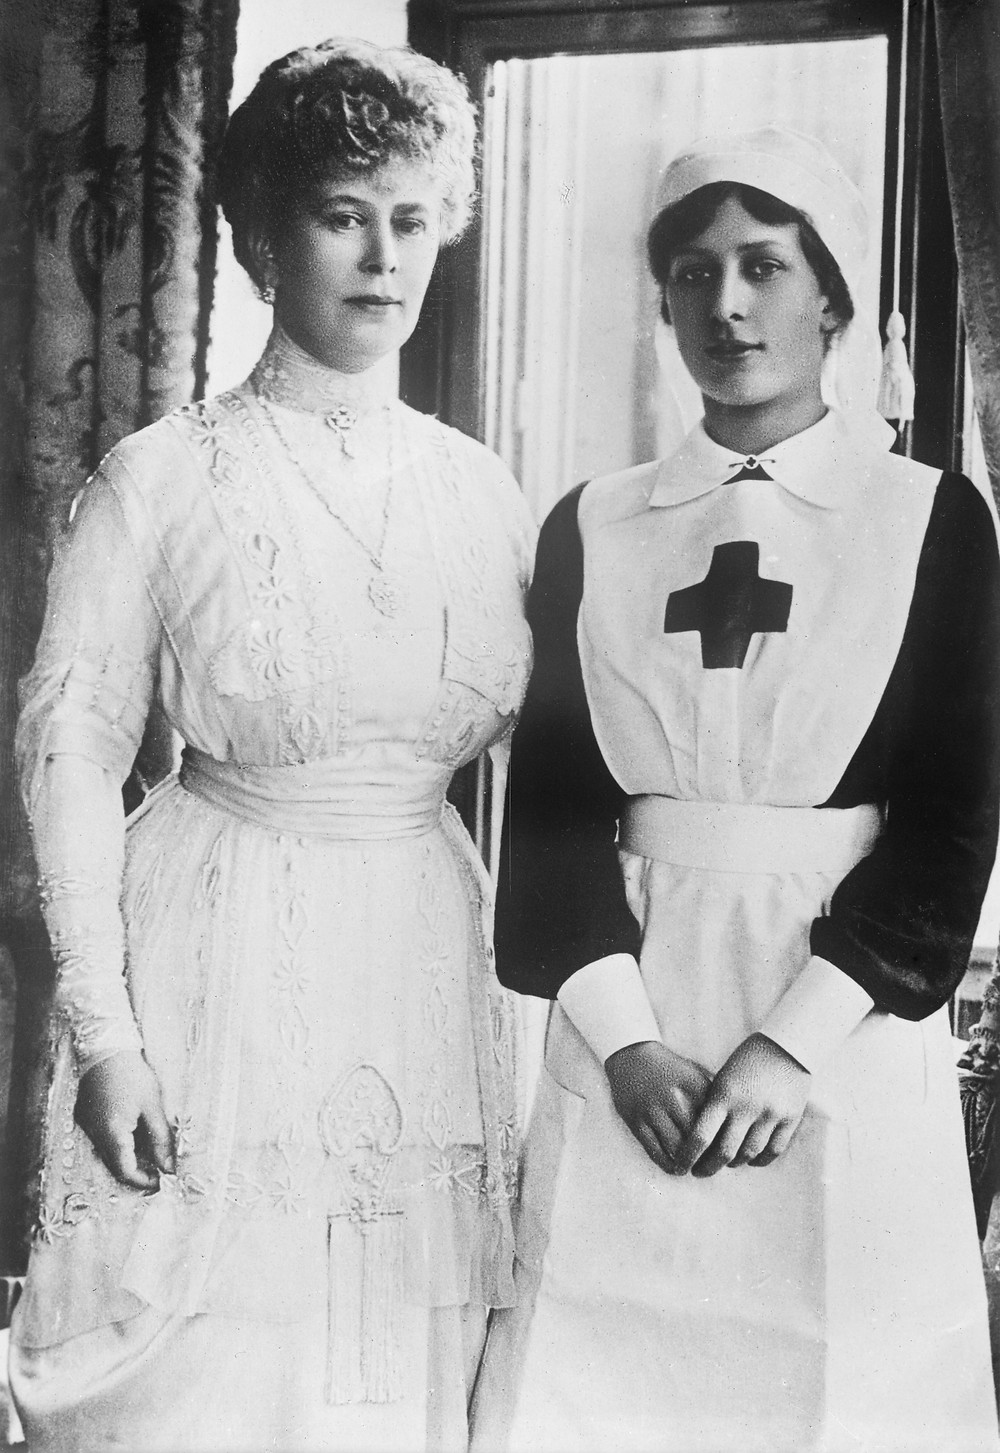 Queen Mary with her daughter Mary, Princess Royal during the First World War. 1914-18